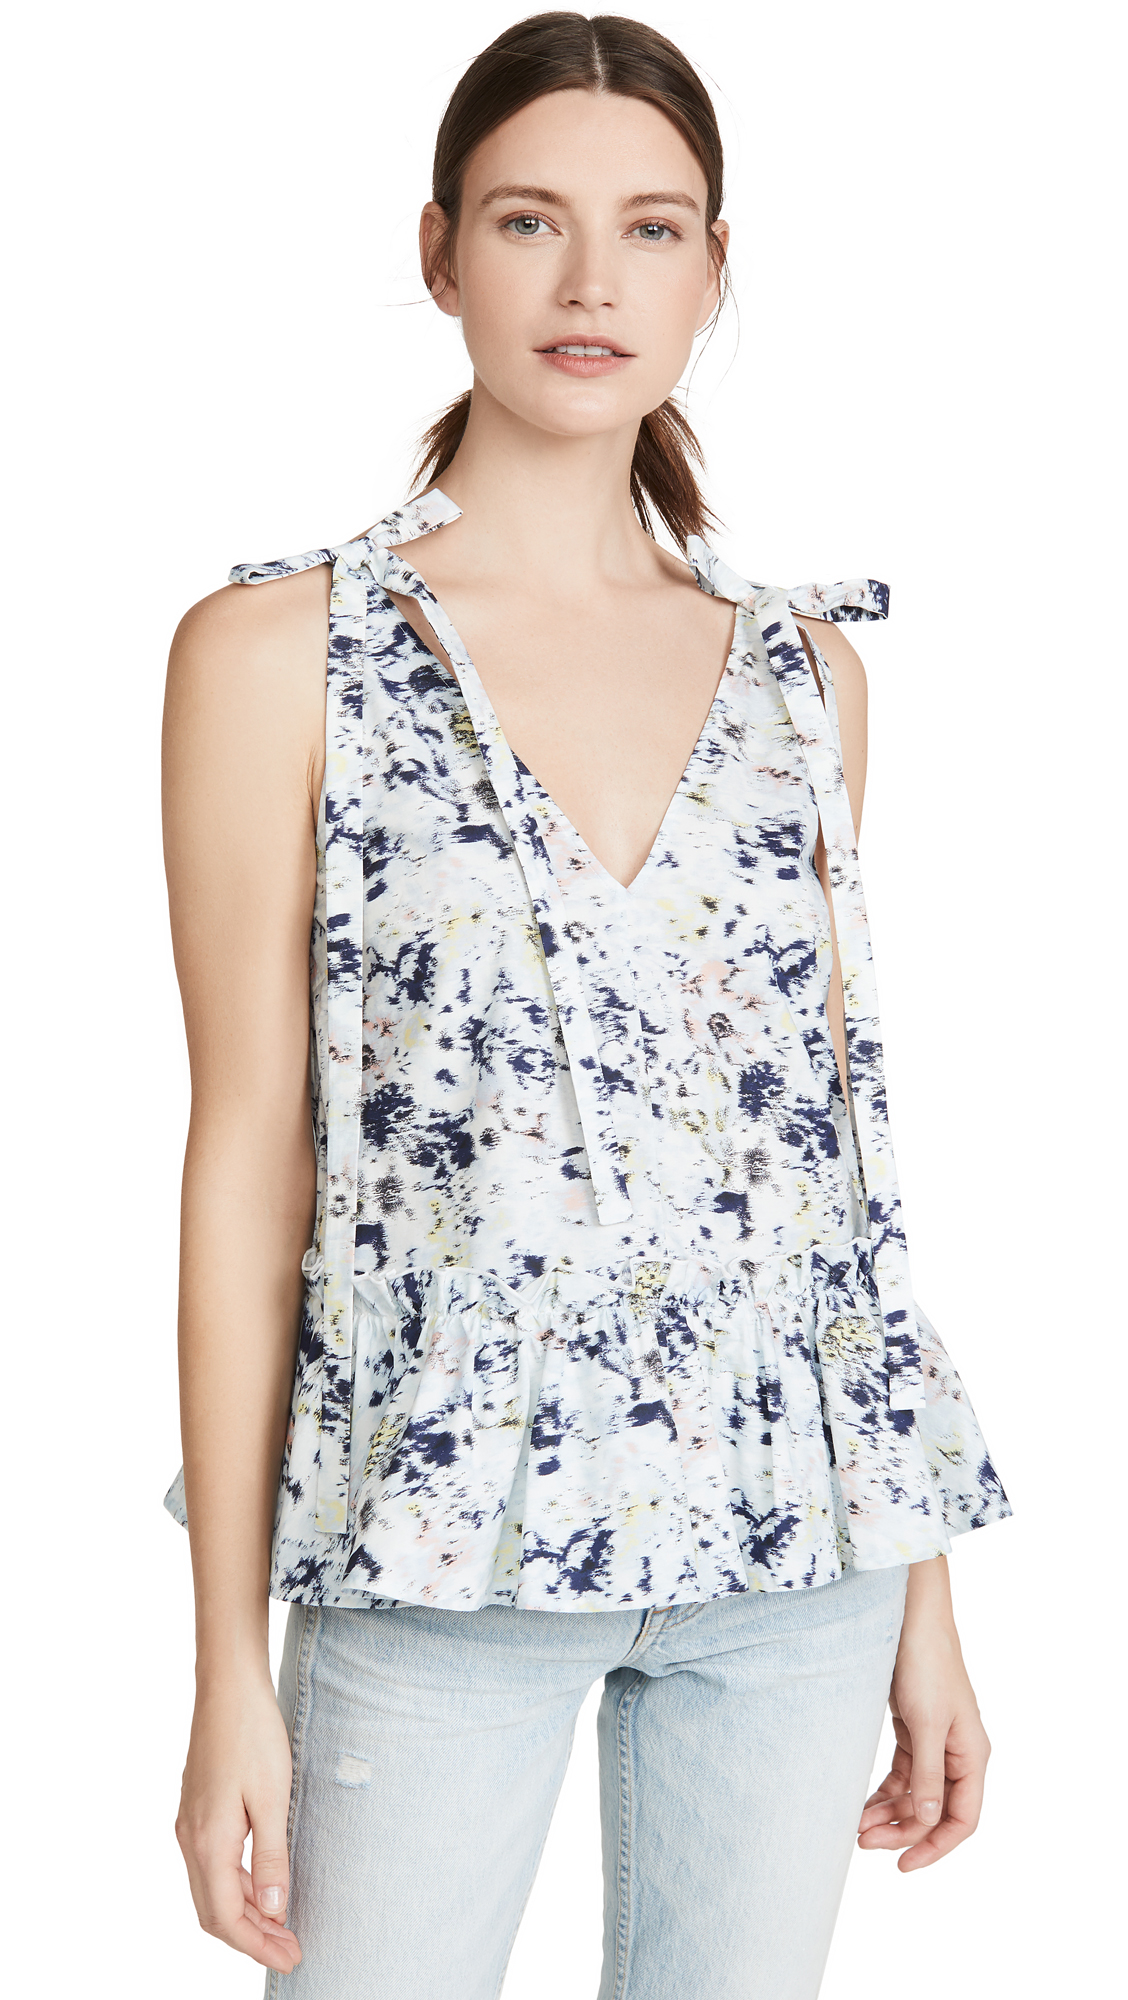 Jason Wu Blurred Magnolia Ruffled V Neck Top - 40% Off Sale